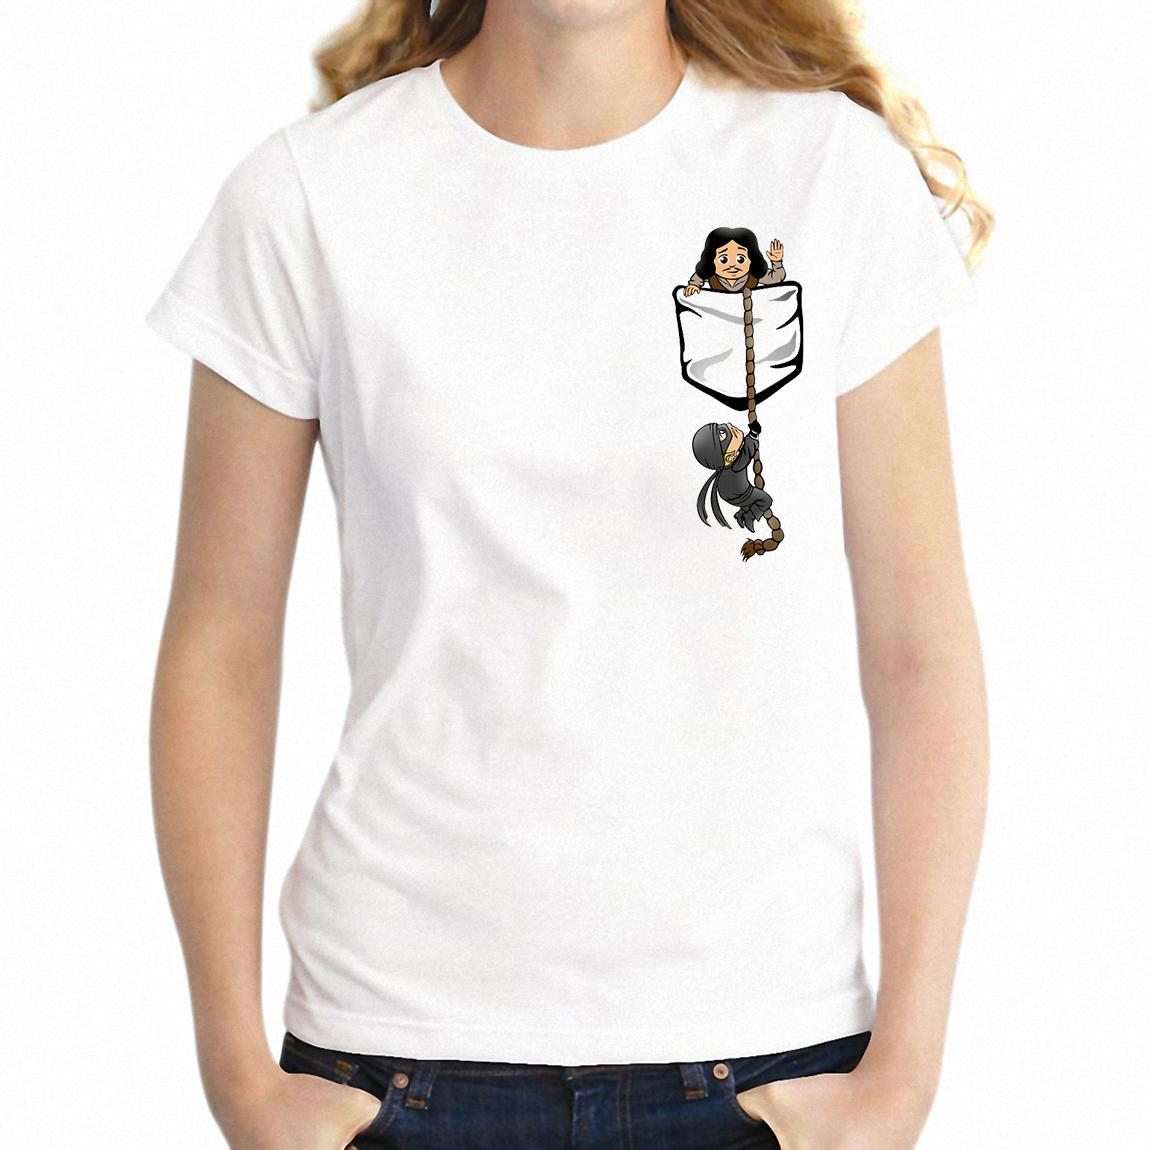 Camiseta de mujer Princess Bride Pocket Shirt Funny Girl's Tee